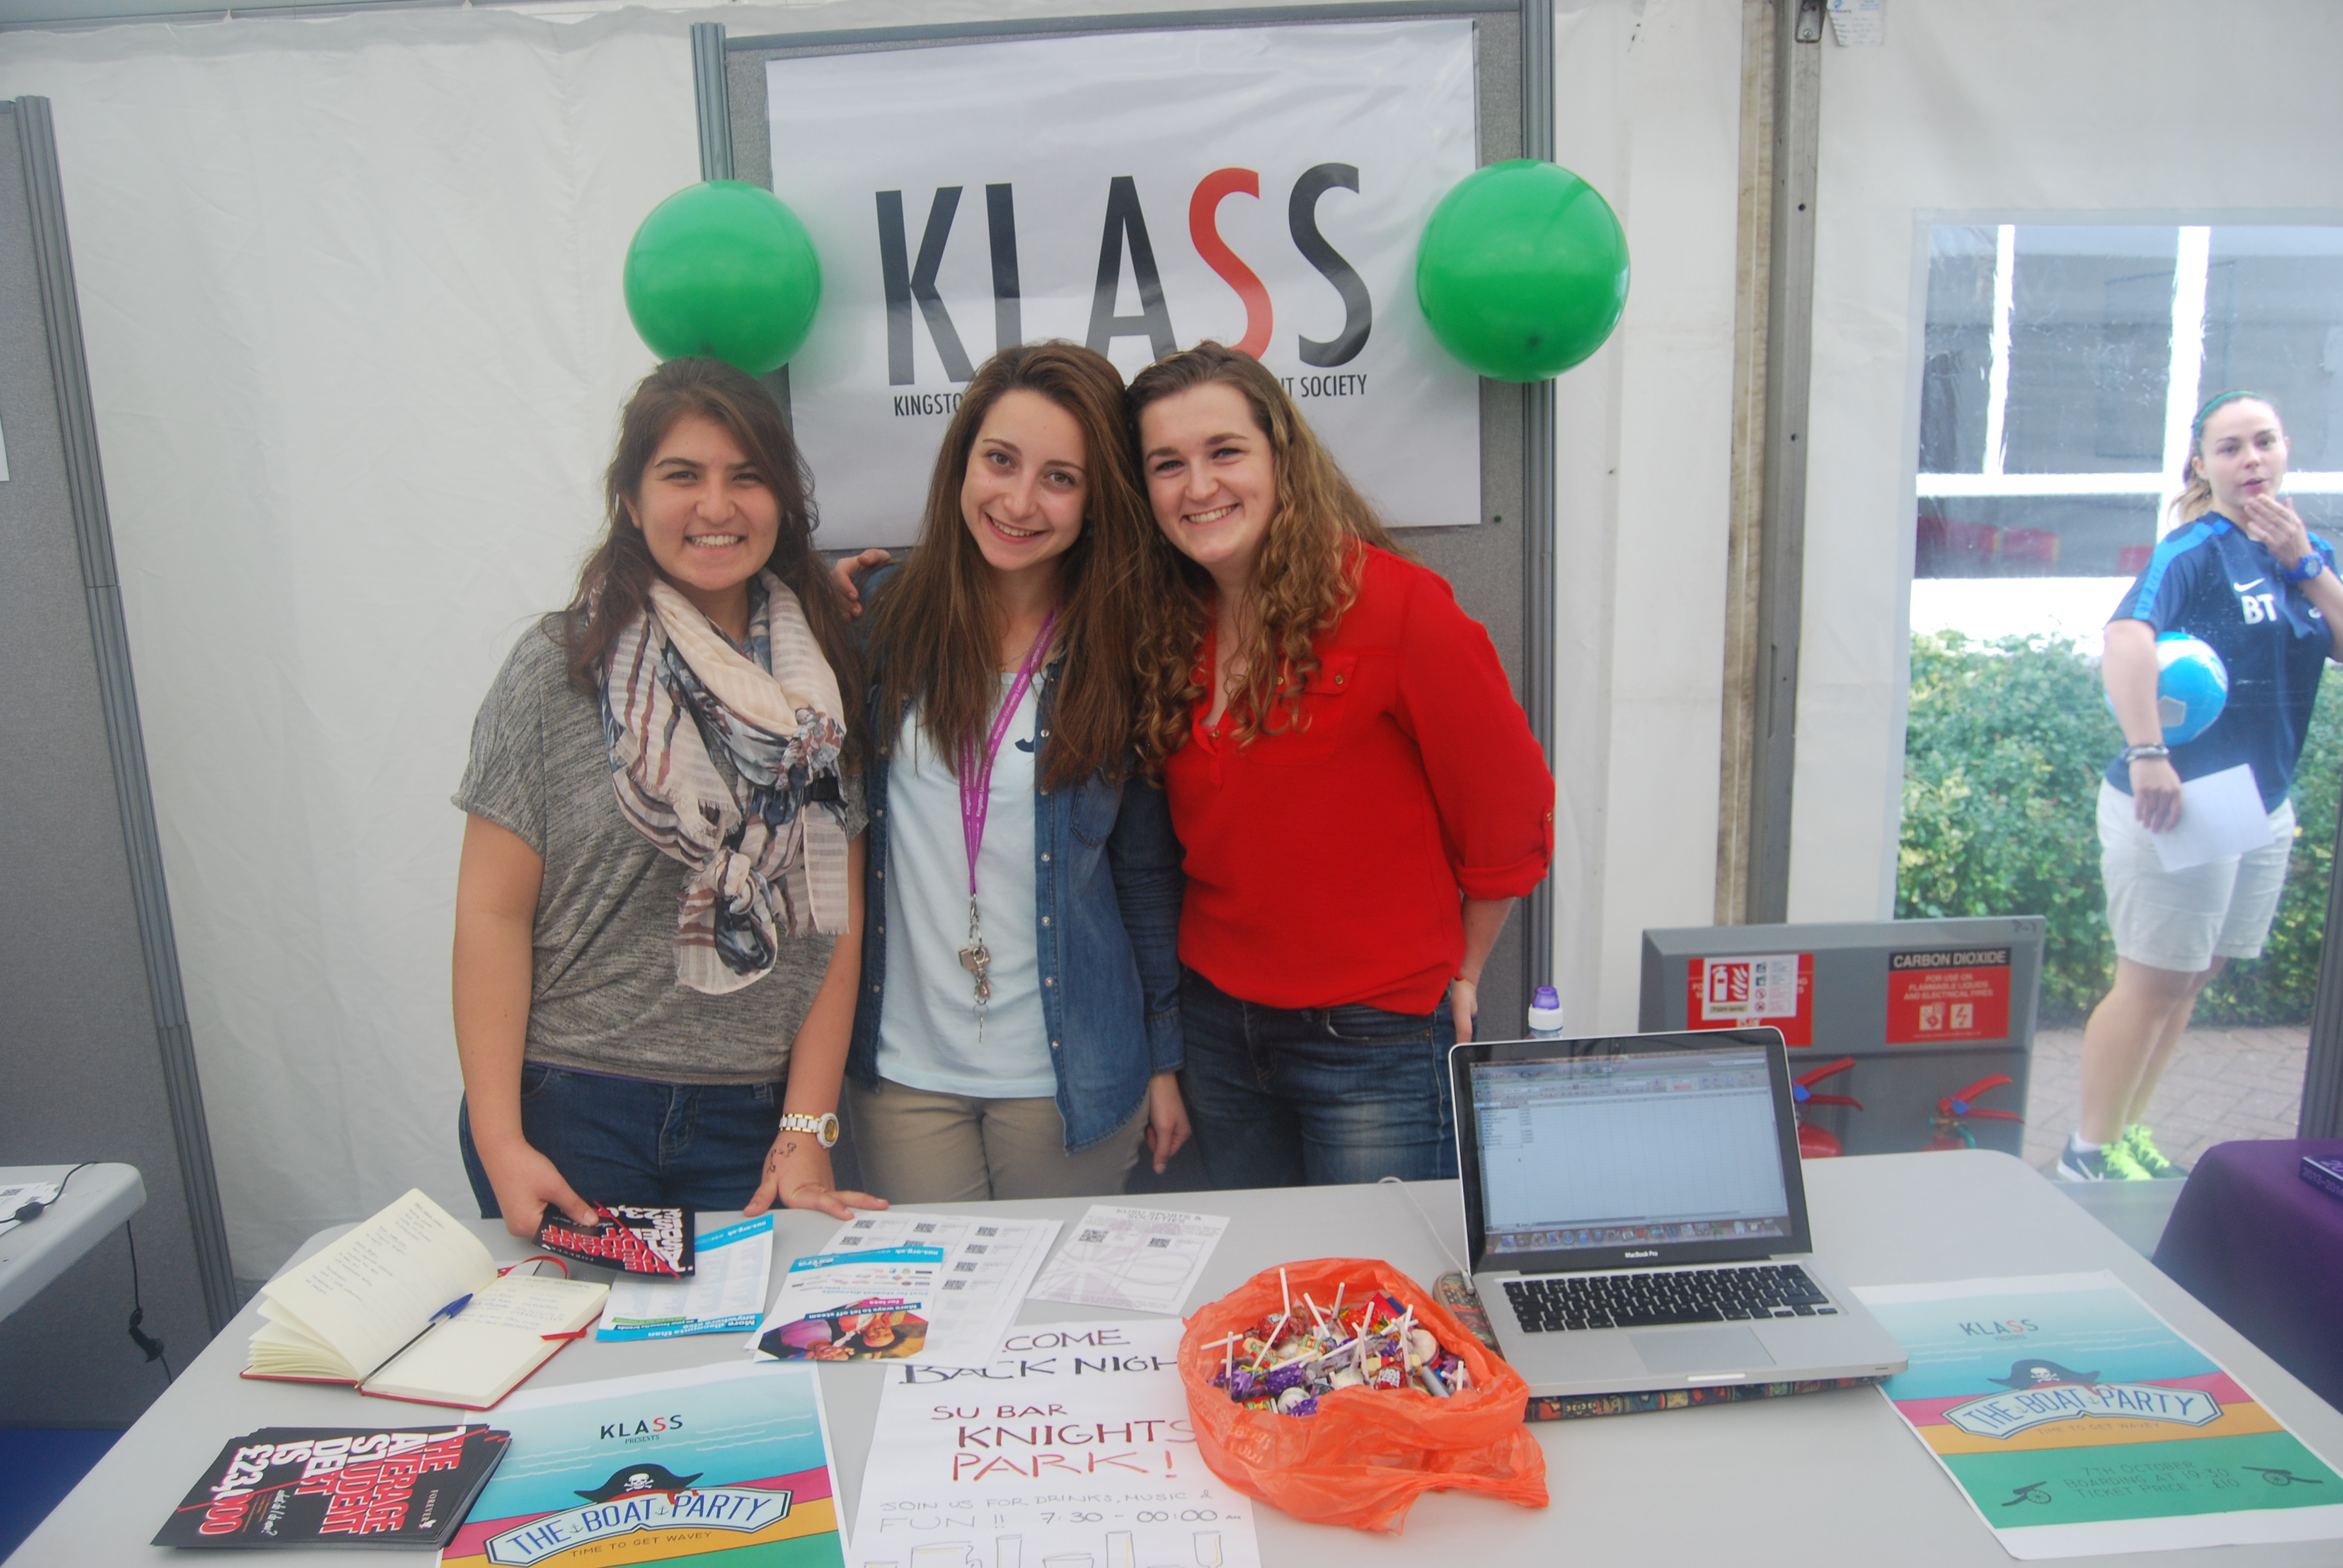 Kingston Landscape and Architecture Student Society (KLASS) eagerly recruited new students